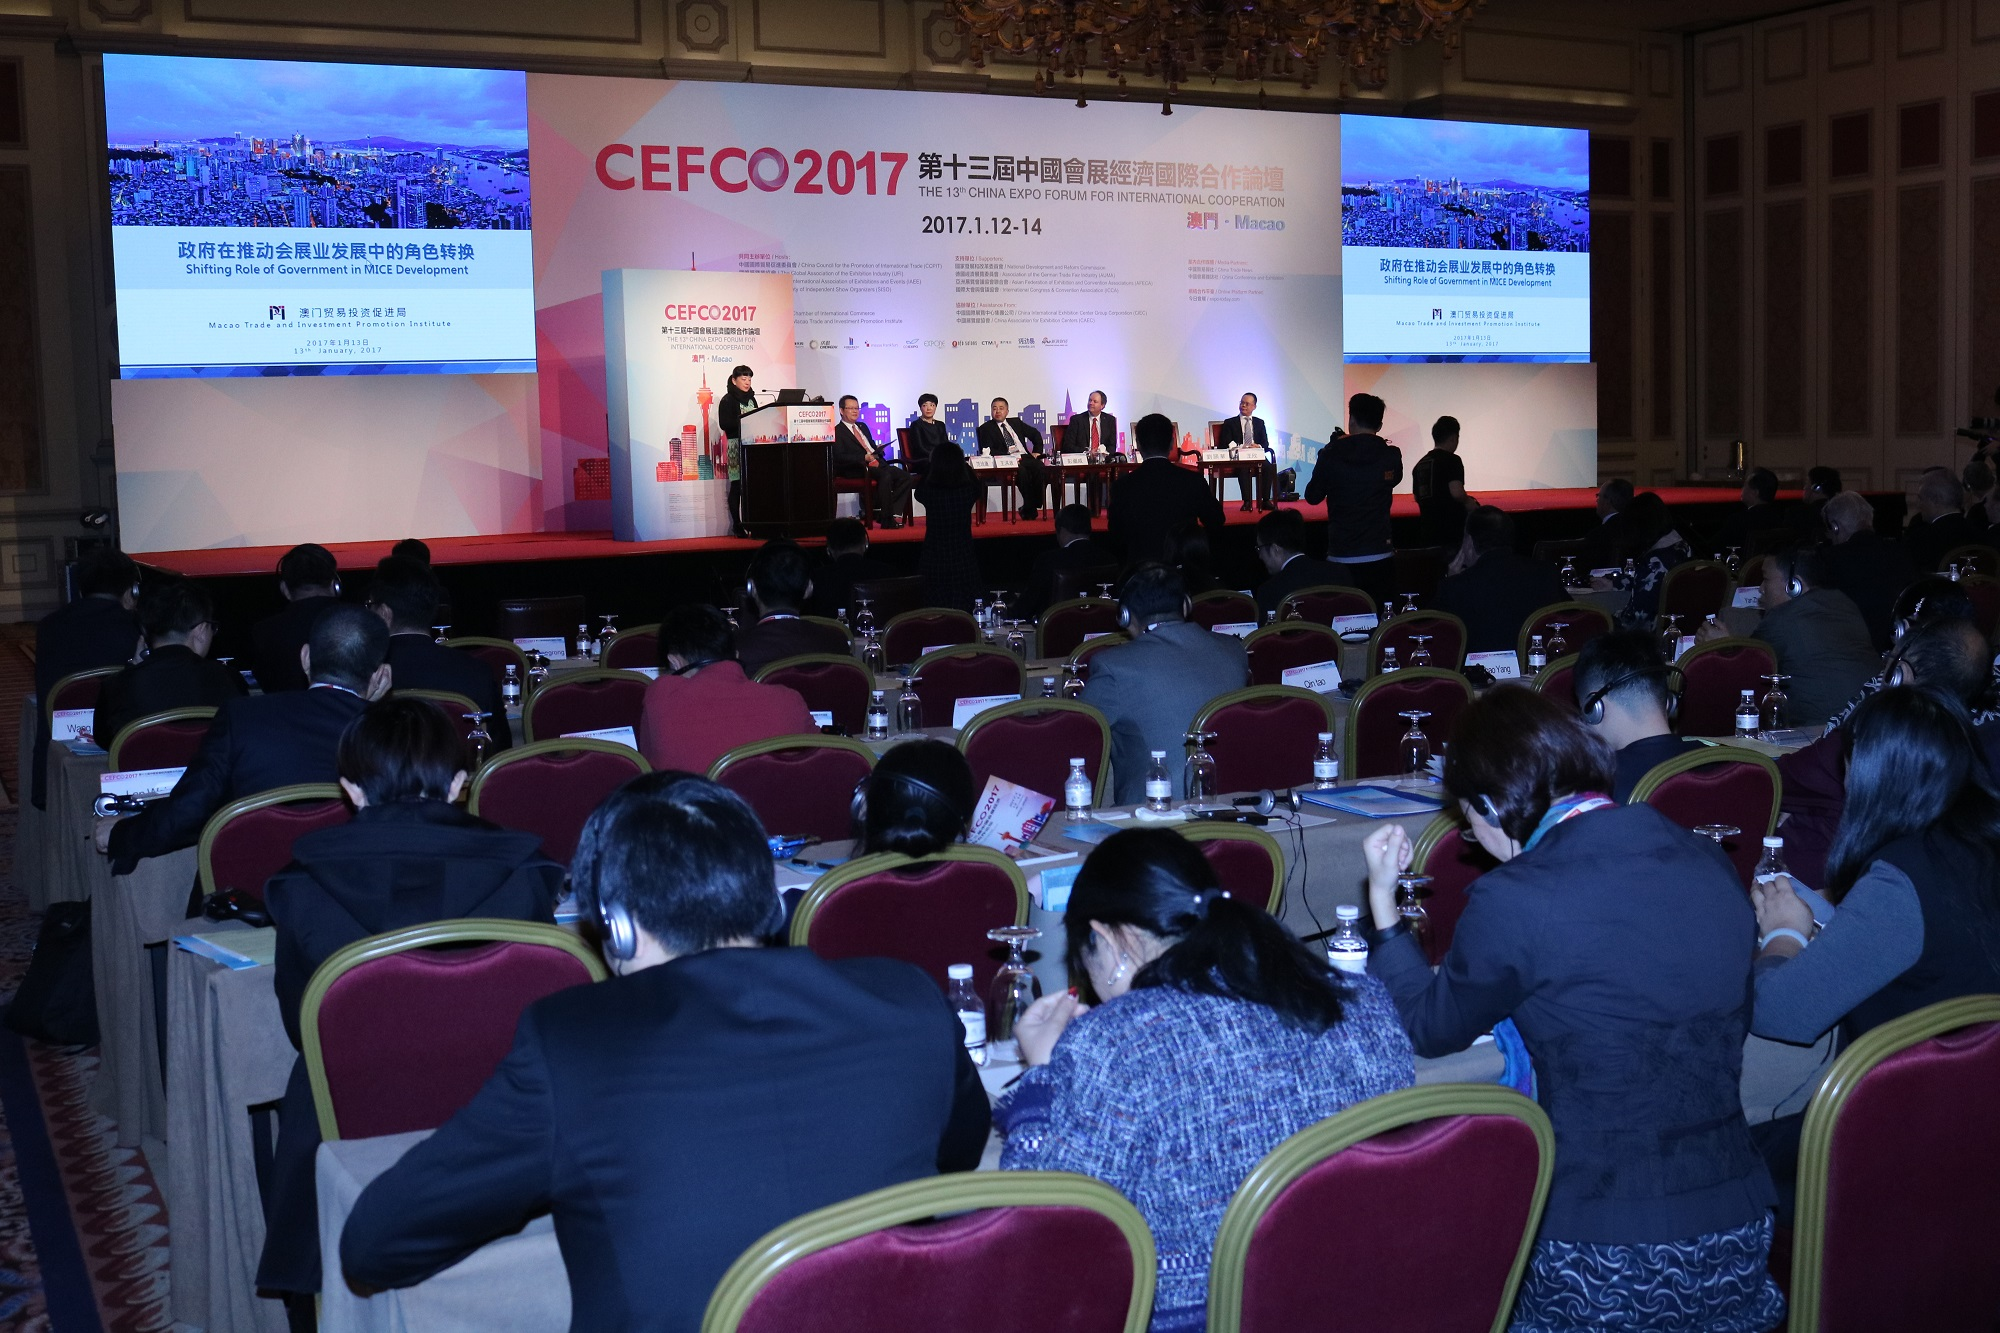 Several sessions were held on the second day of CEFCO 2017